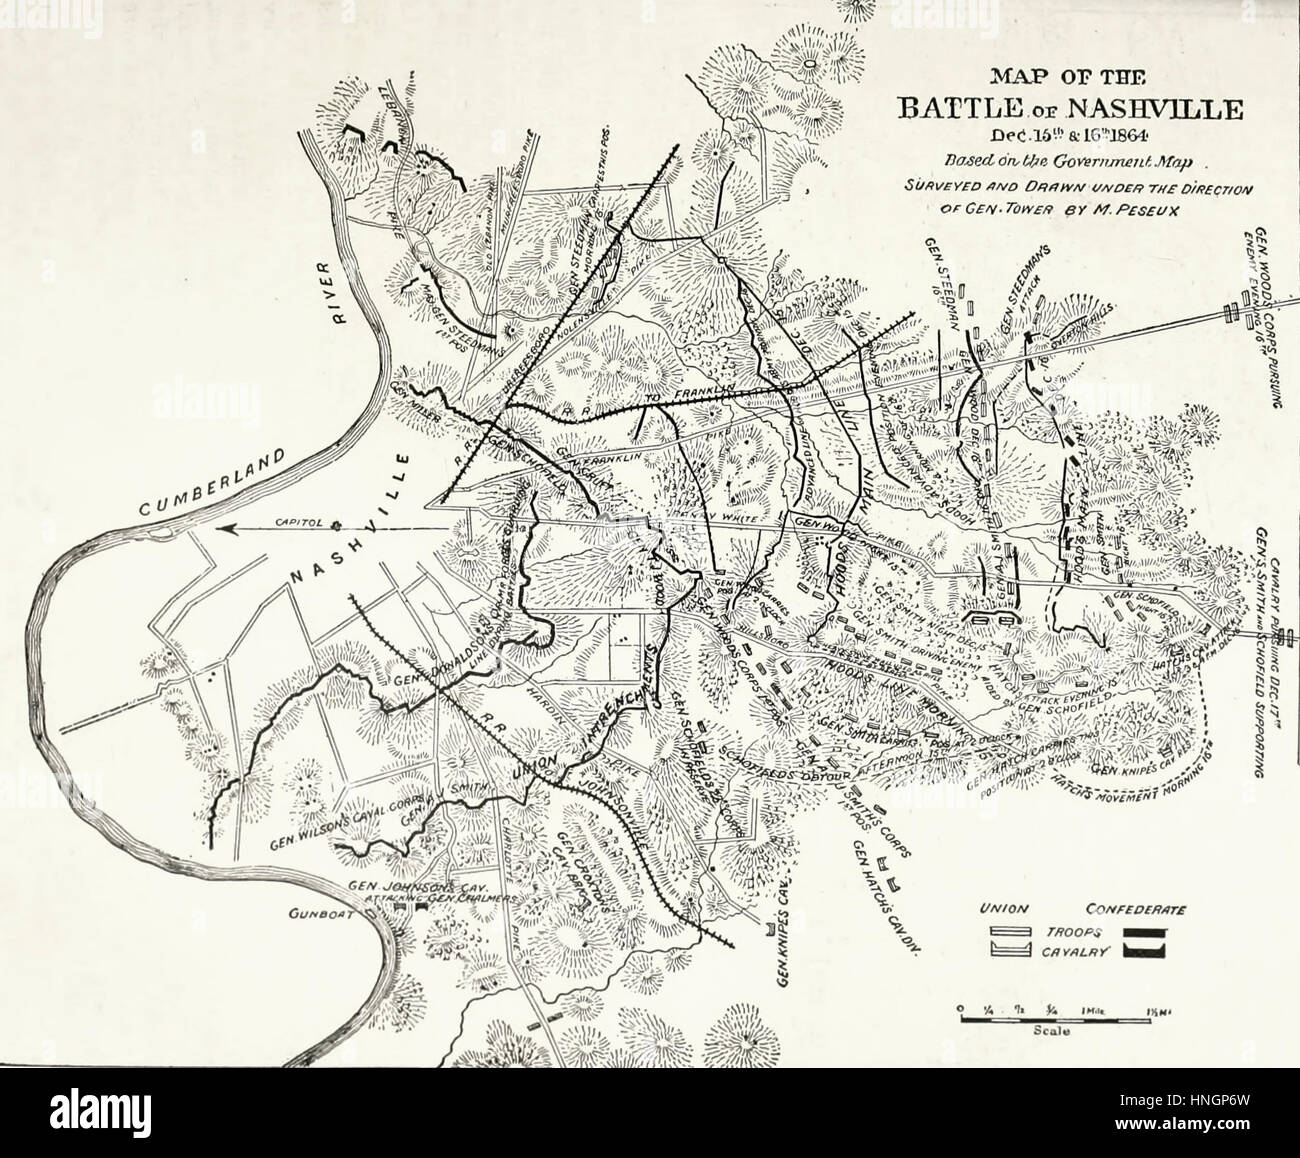 Map of the Battle of Nashville, December 15 and 16, 1864. USA Civil War - Stock Image